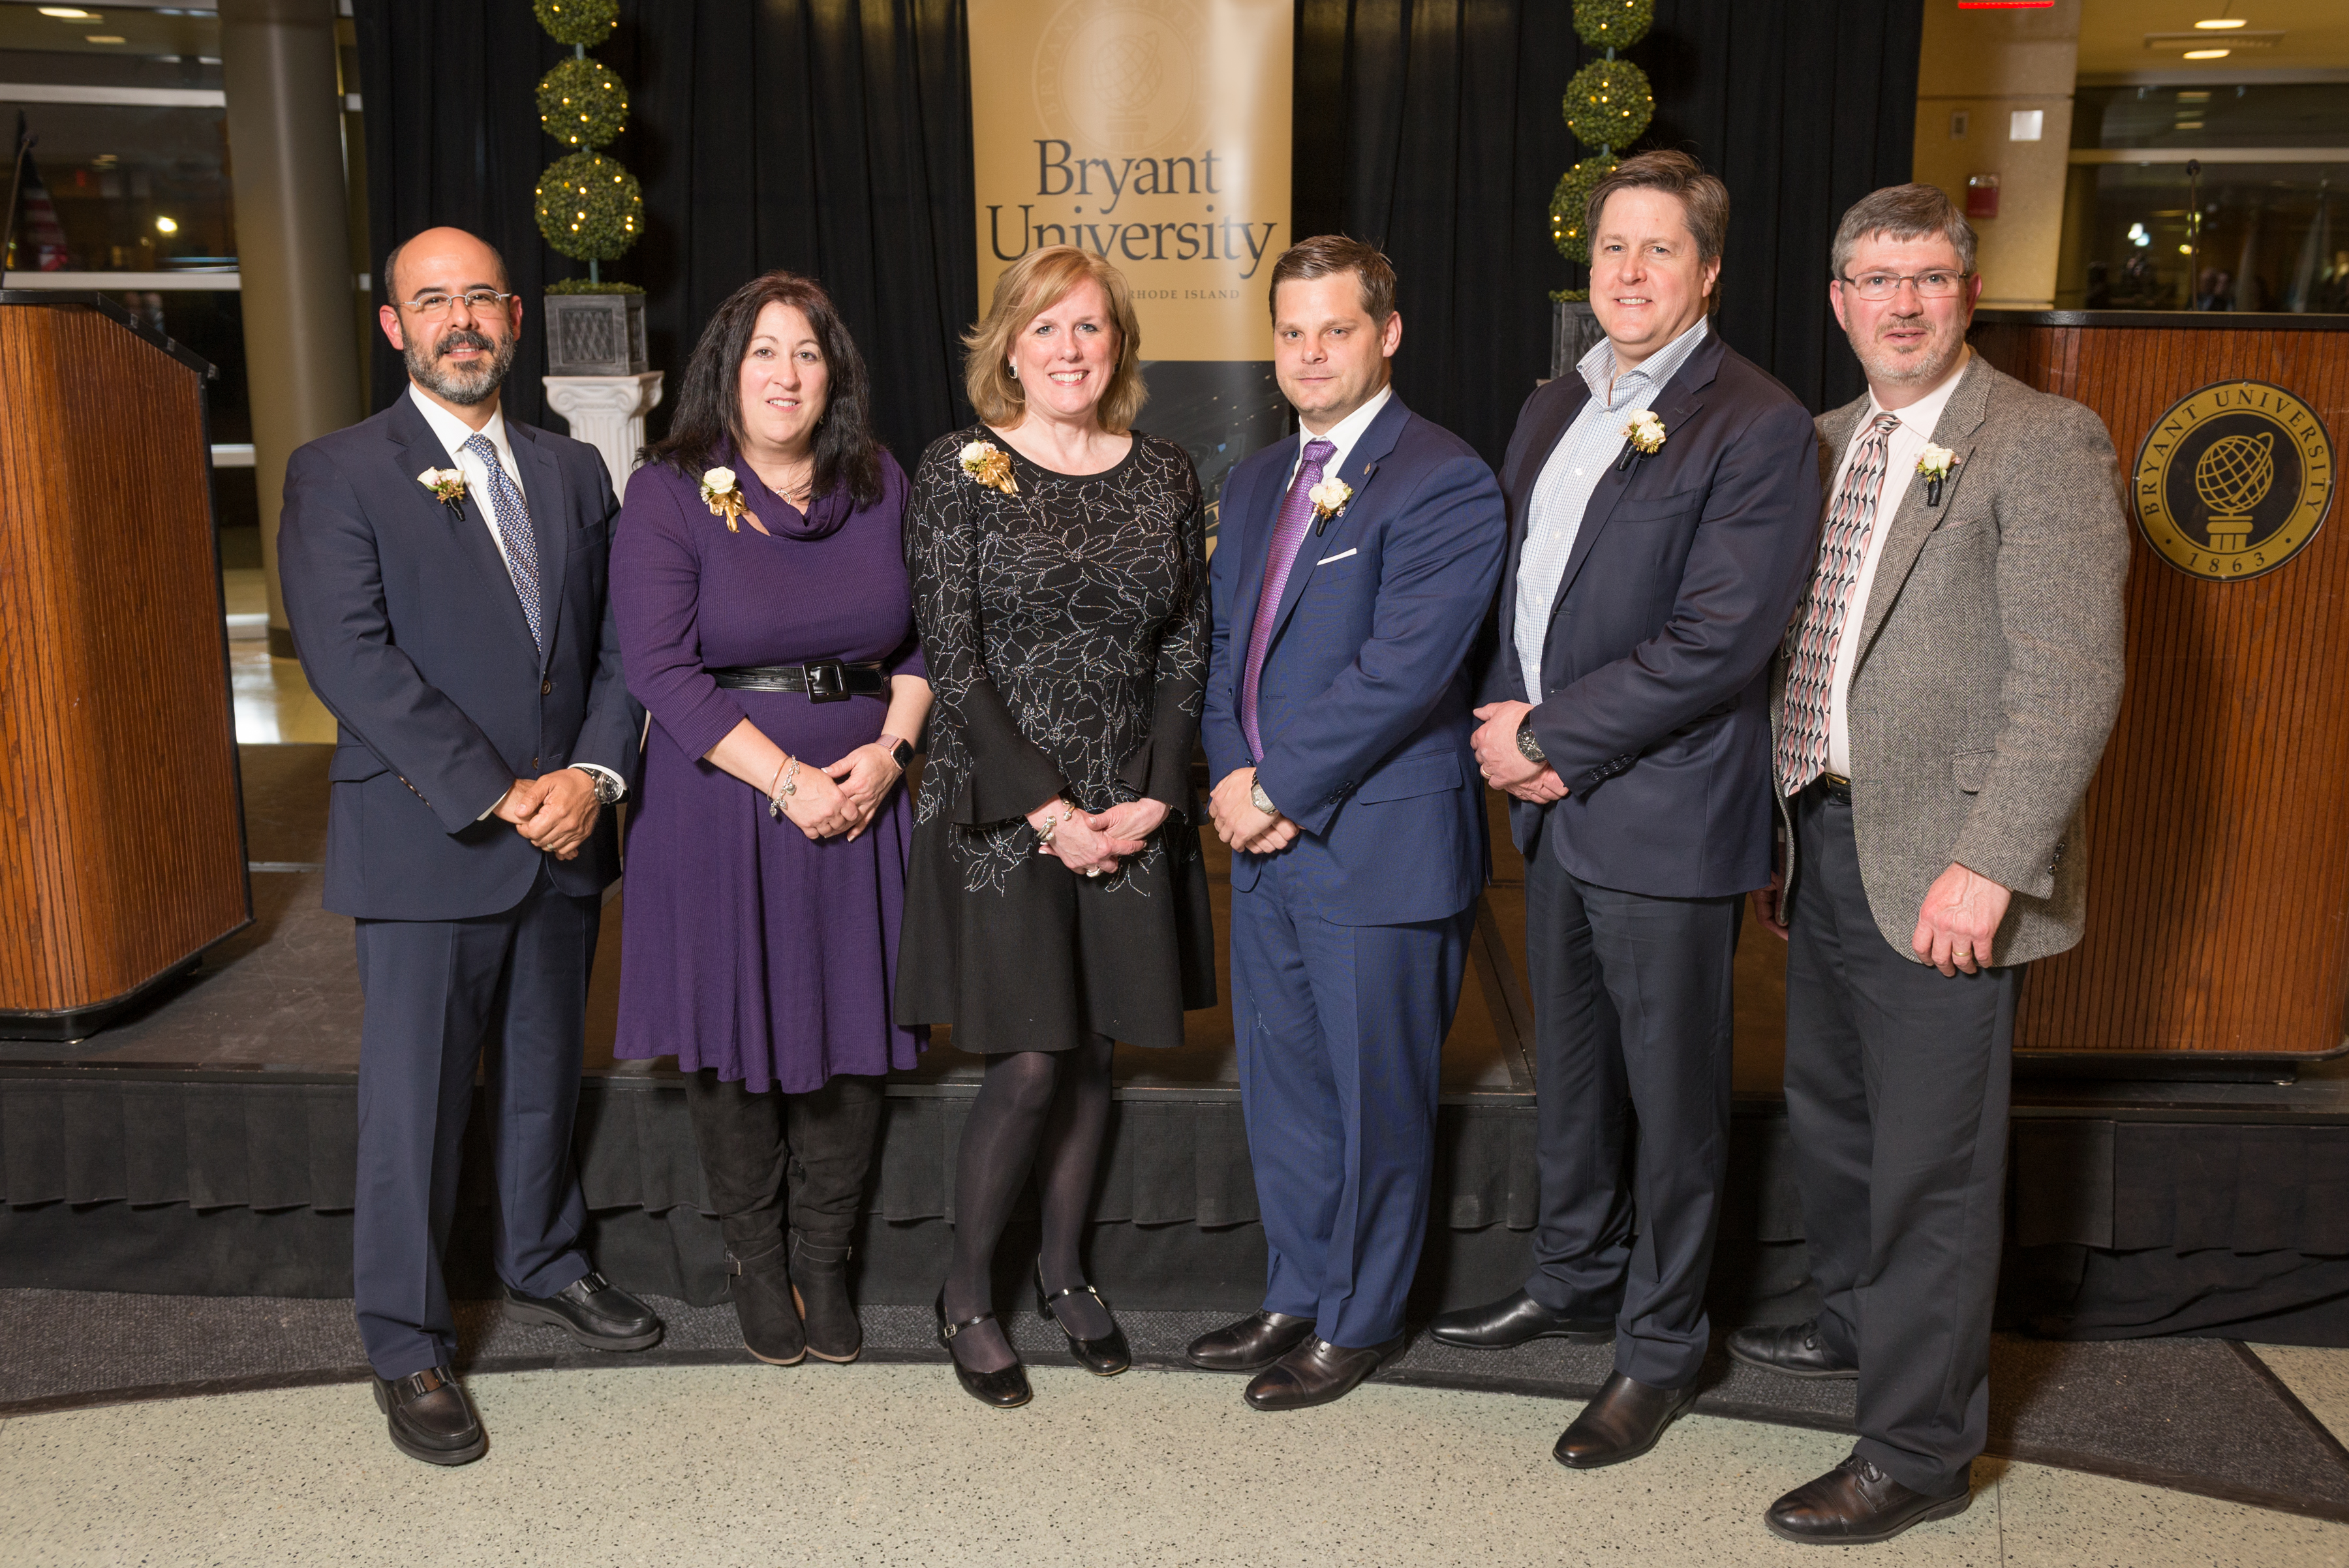 2019 Bryant University Alumni Achievement Award recipients